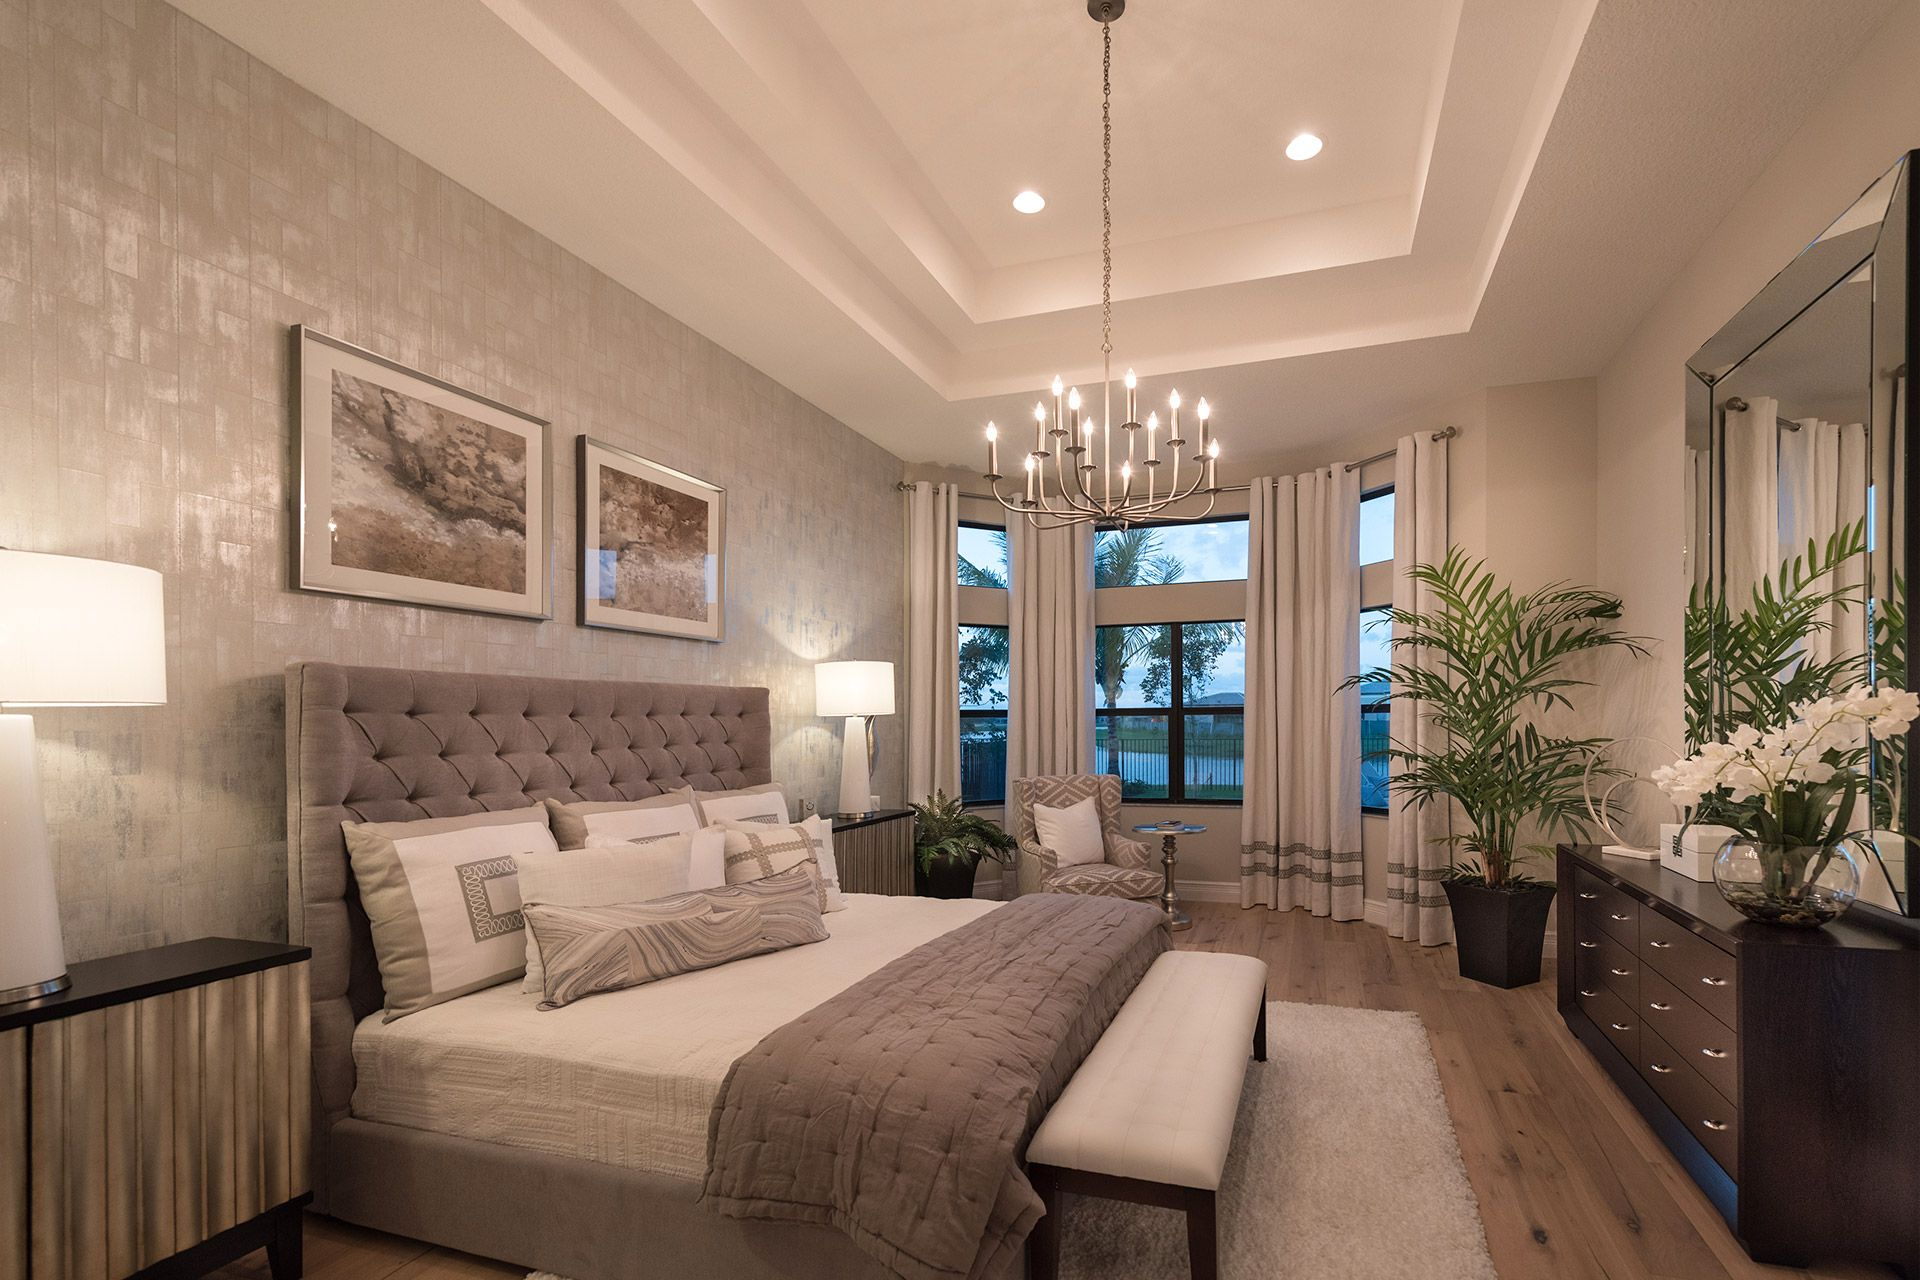 Bedroom featured in the Charleston Grande By GL Homes in Palm Beach County, FL